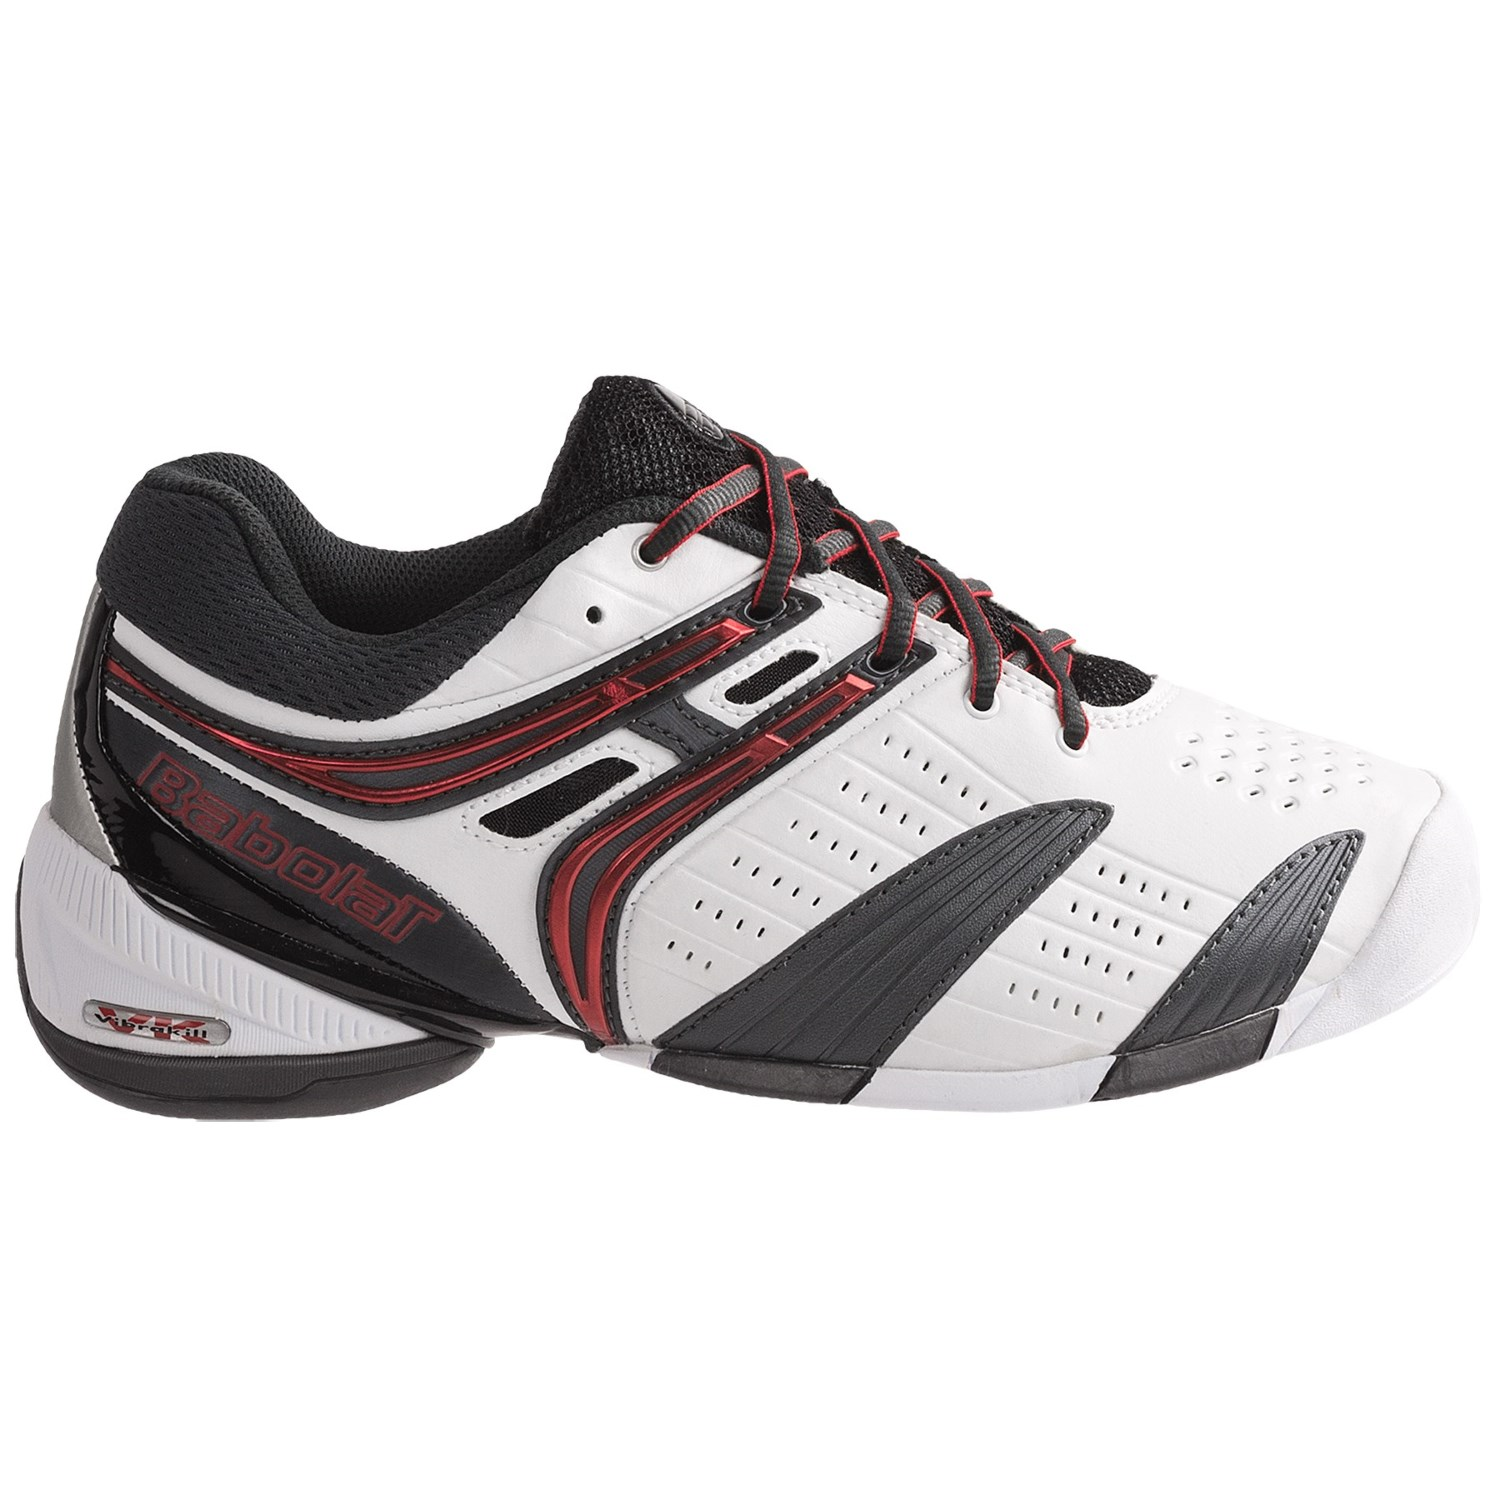 babolat v pro all court tennis shoes for 6533h